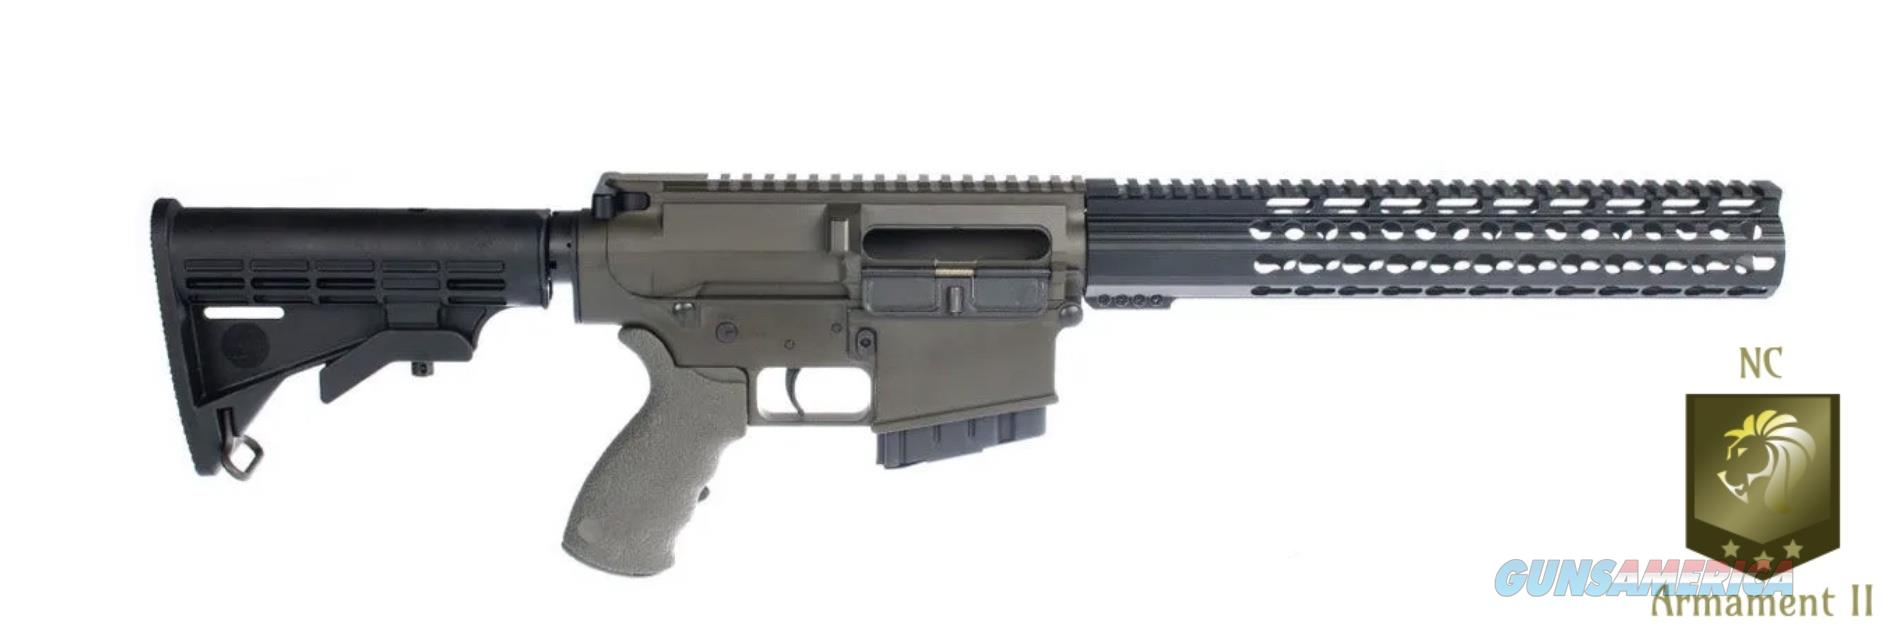 DPMS AR-308 Build Kit OD Green